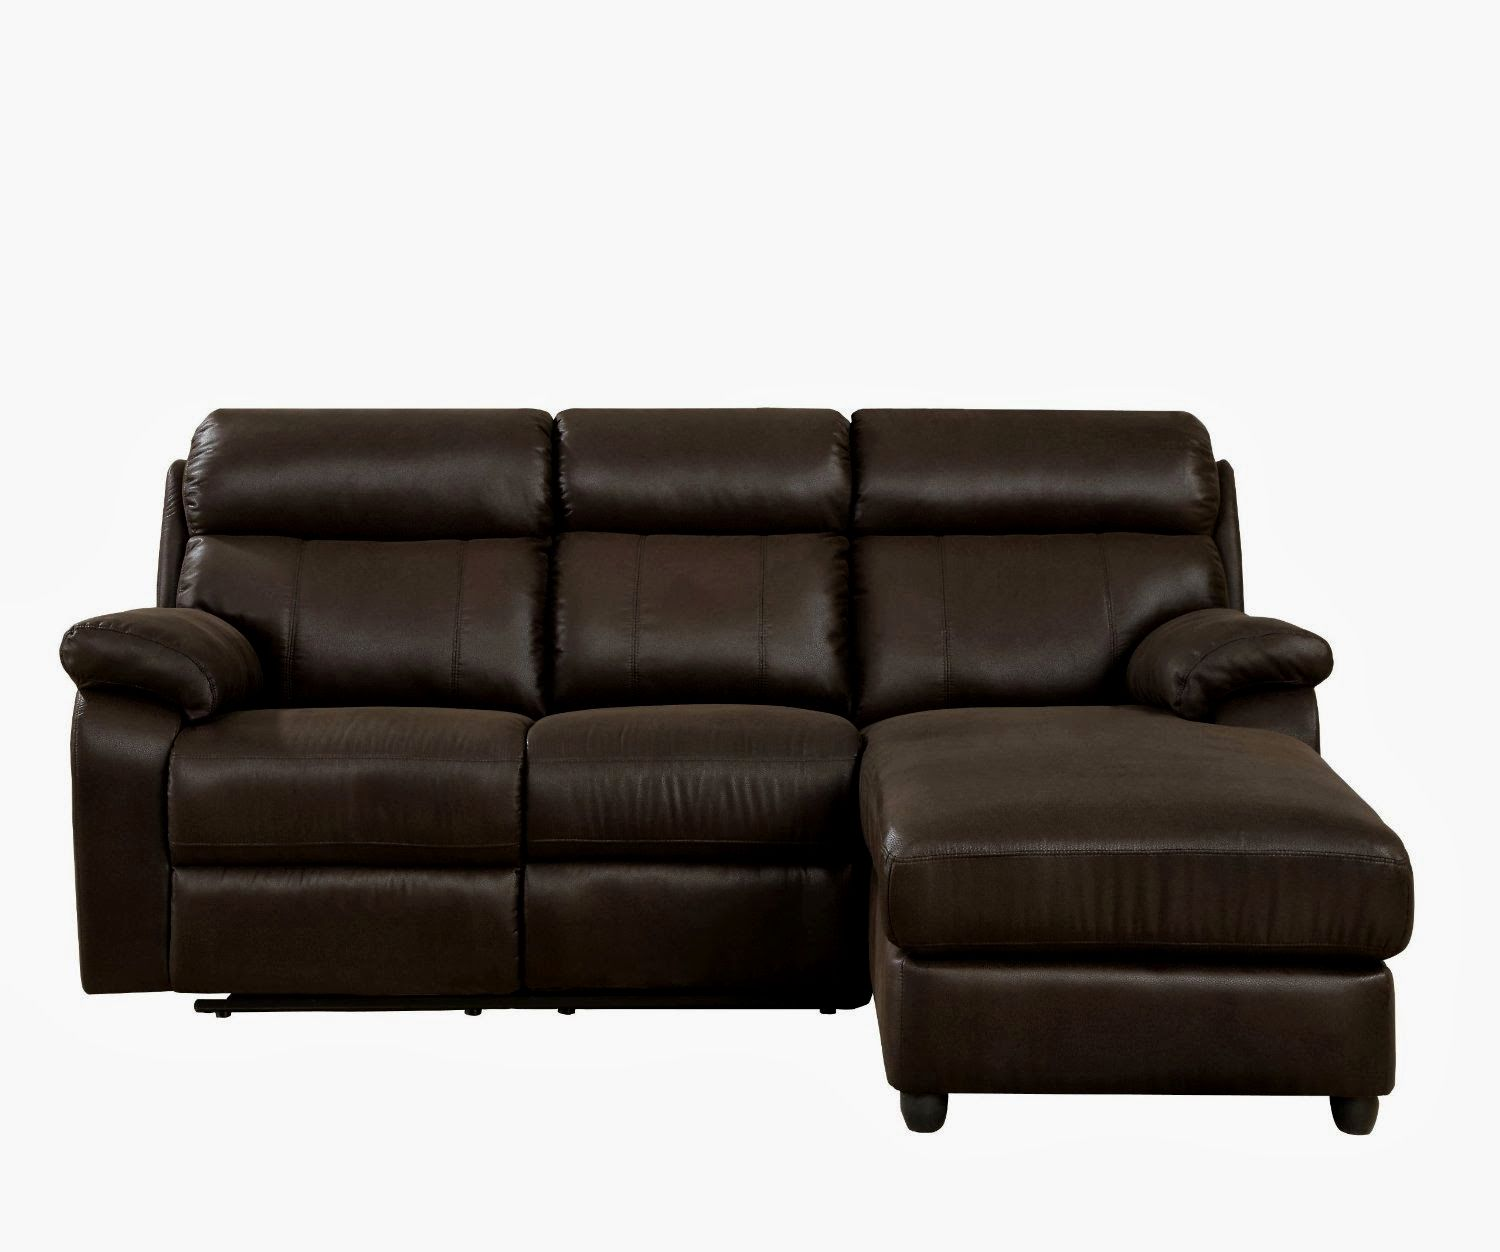 best sectional leather sofas online-Unique Sectional Leather sofas Decoration